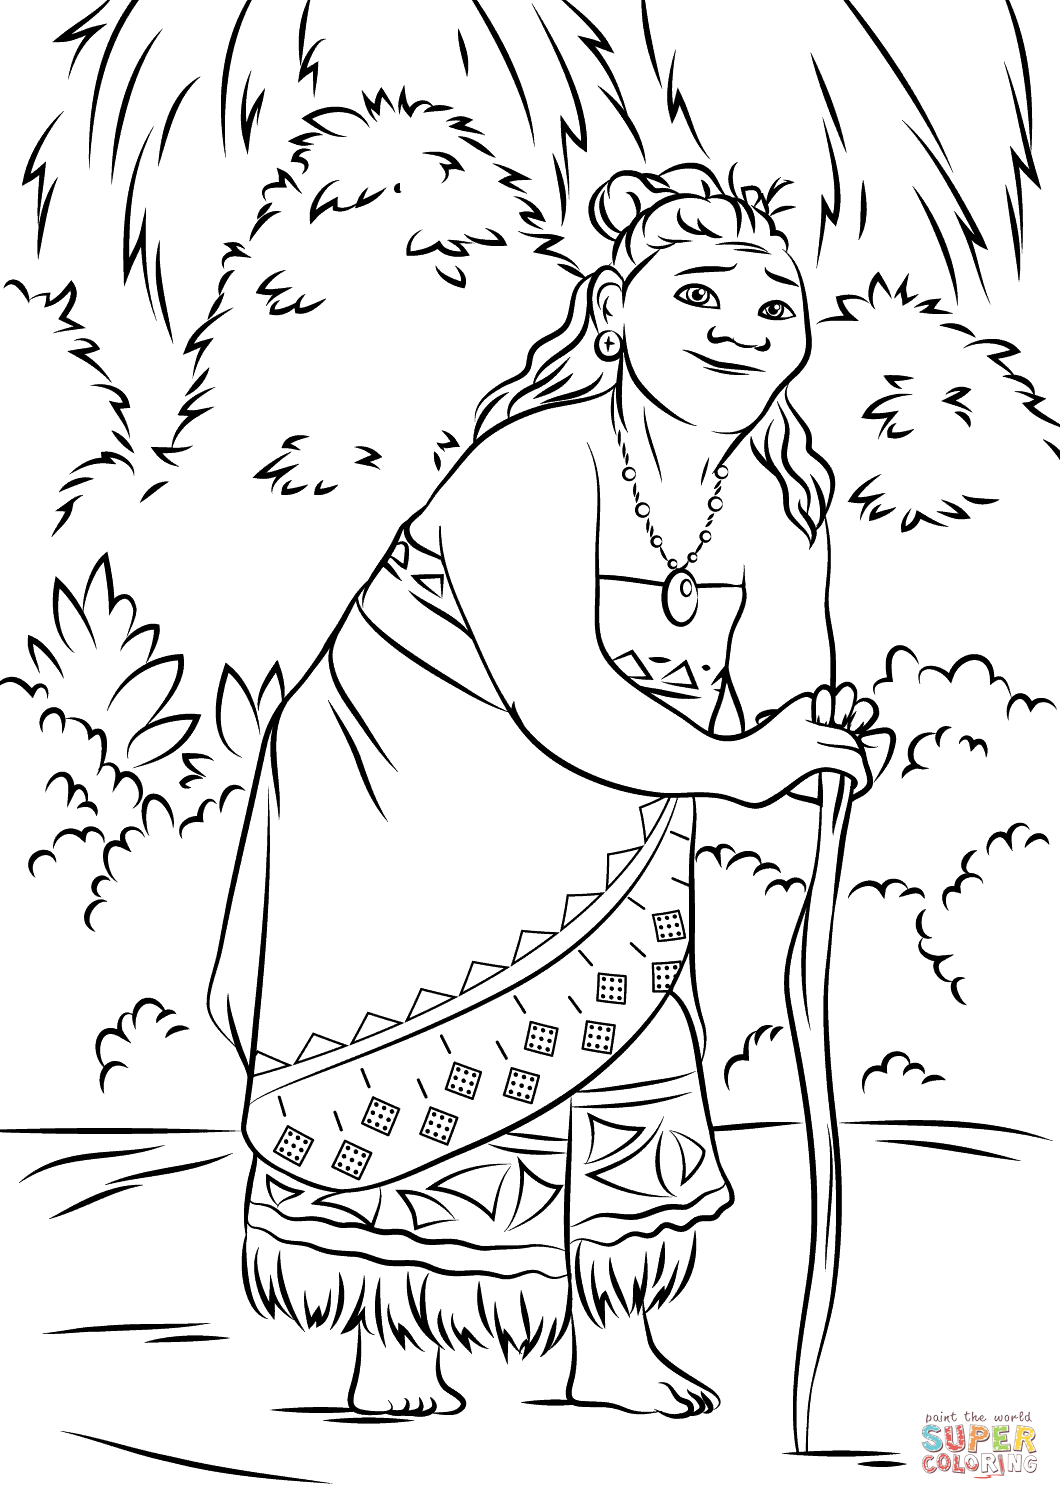 Zany image for moana printable coloring pages